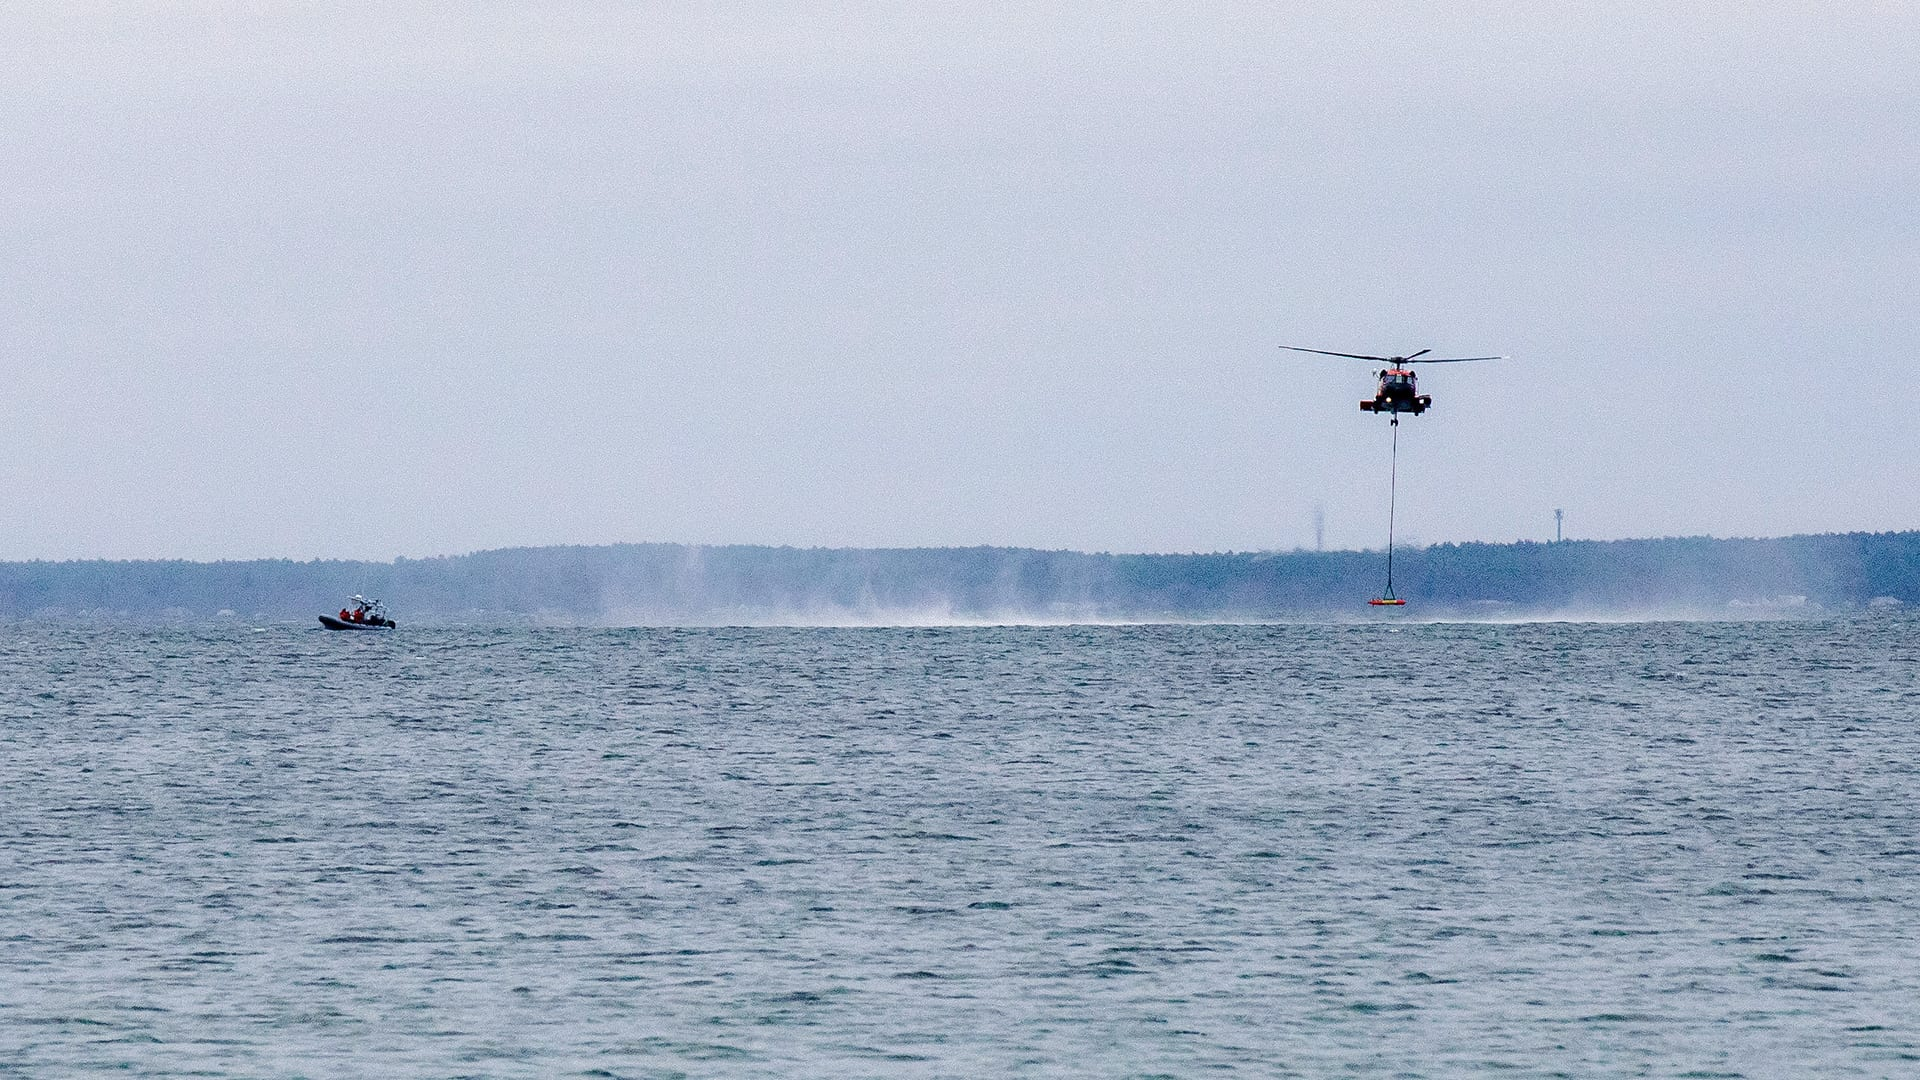 A USCG Jayhawk helicopter releases LRAUV near the Scibotics Team aboard a Zodiac in Buzzards Bay, where the team can inspect the vehicle's systems underwater. (Jayne Doucette, © Woods Hole Oceanographic Institution)